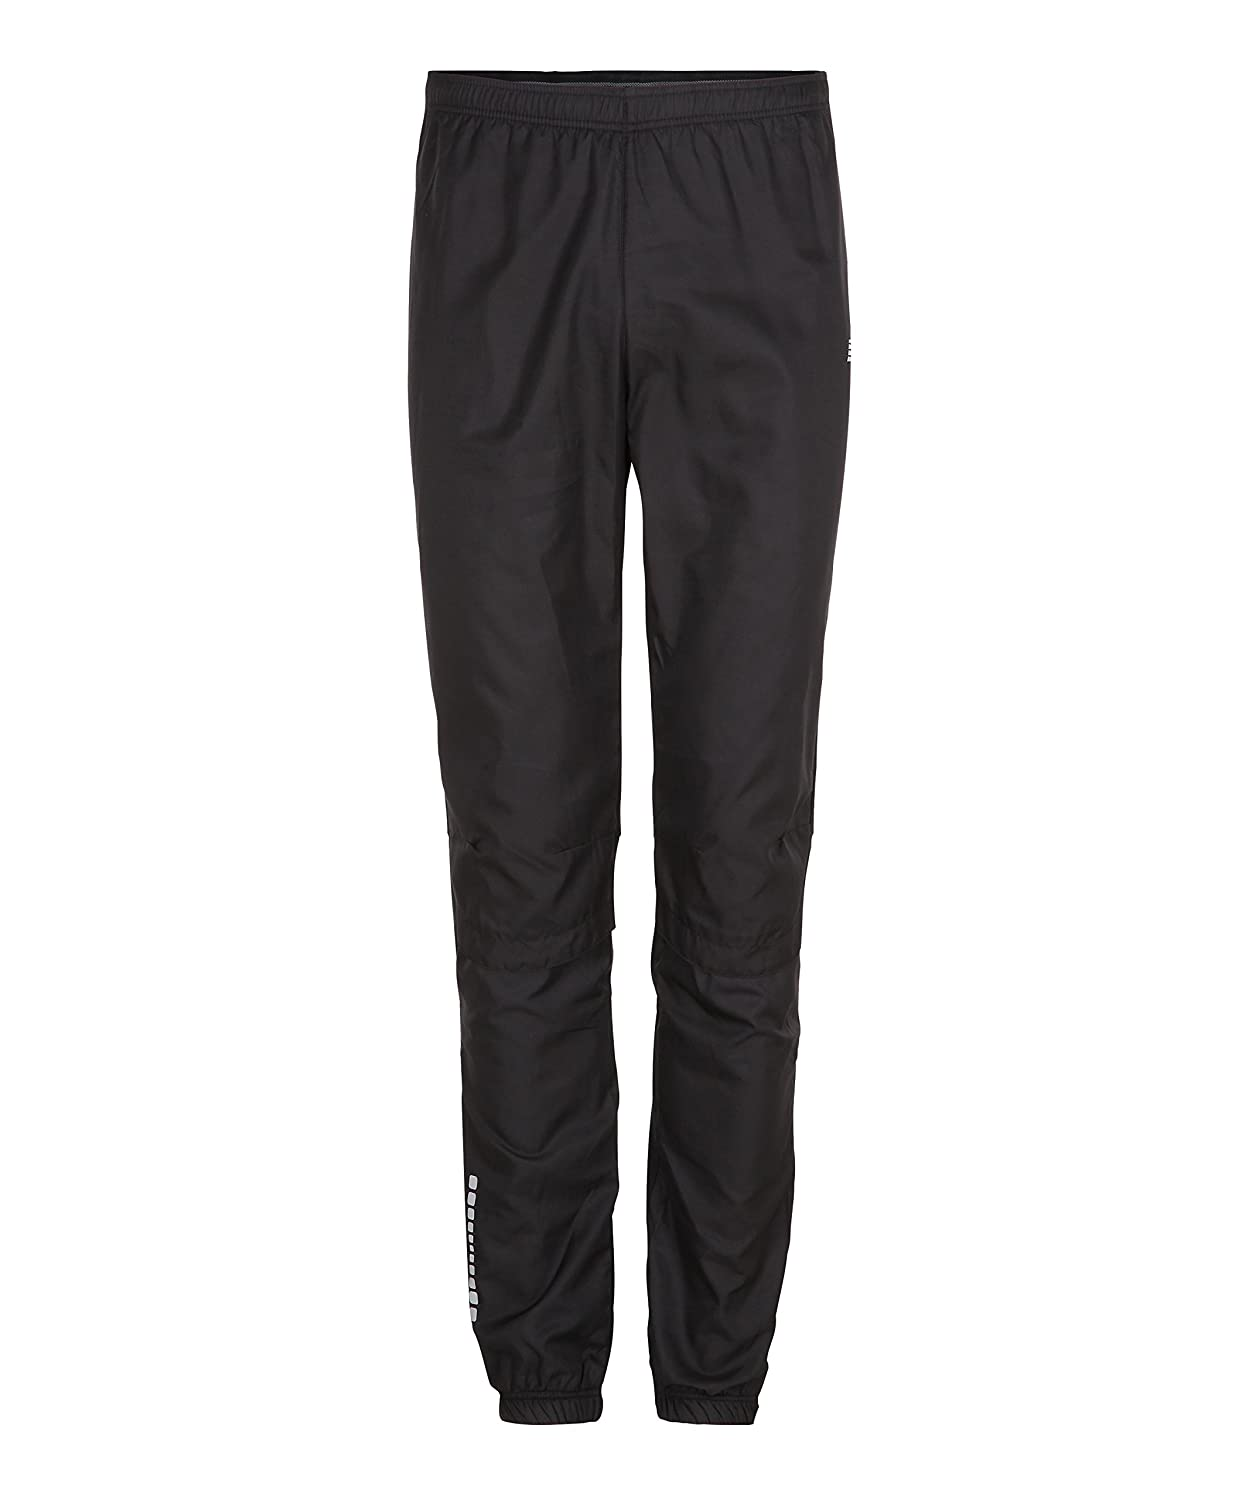 newline Base Cross Pant SCHWARZ 14105060